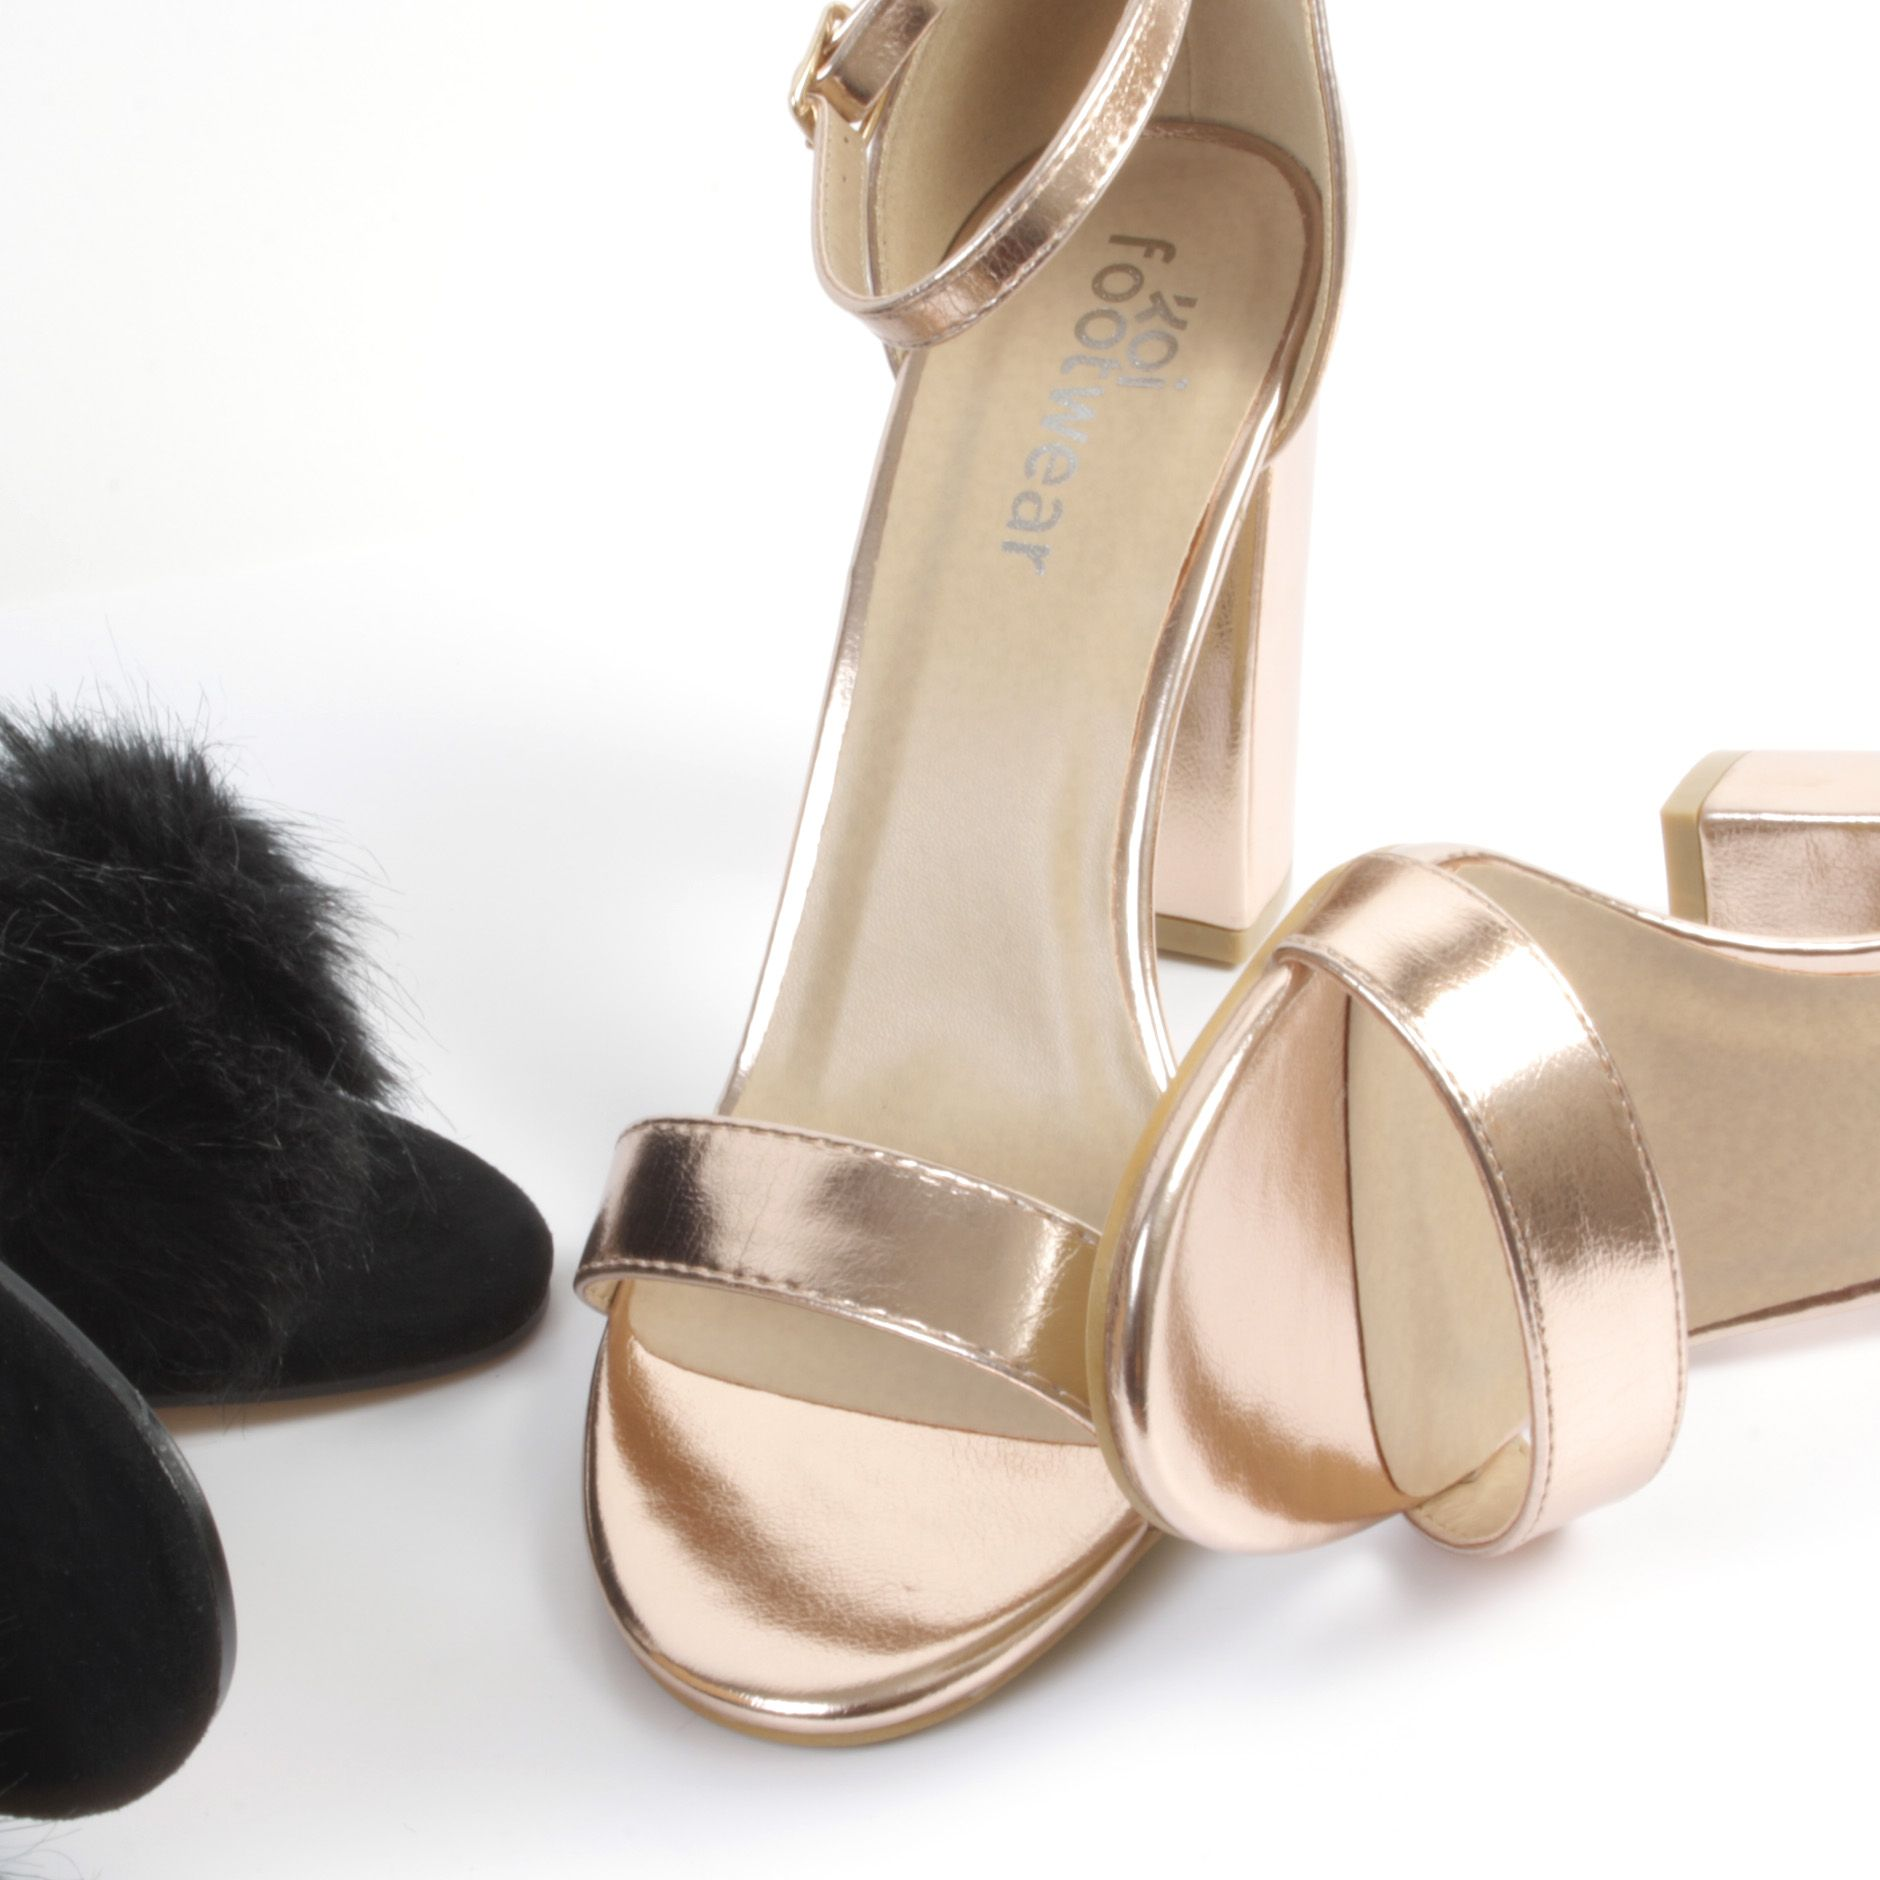 acfea5e4a3a030 Gorge gold block heels perfect for a special occasion! Only €34.99 from  Korkys.ie  korkys  queeeen  korkysshoes  occasionheels  graduation  style   fashion ...